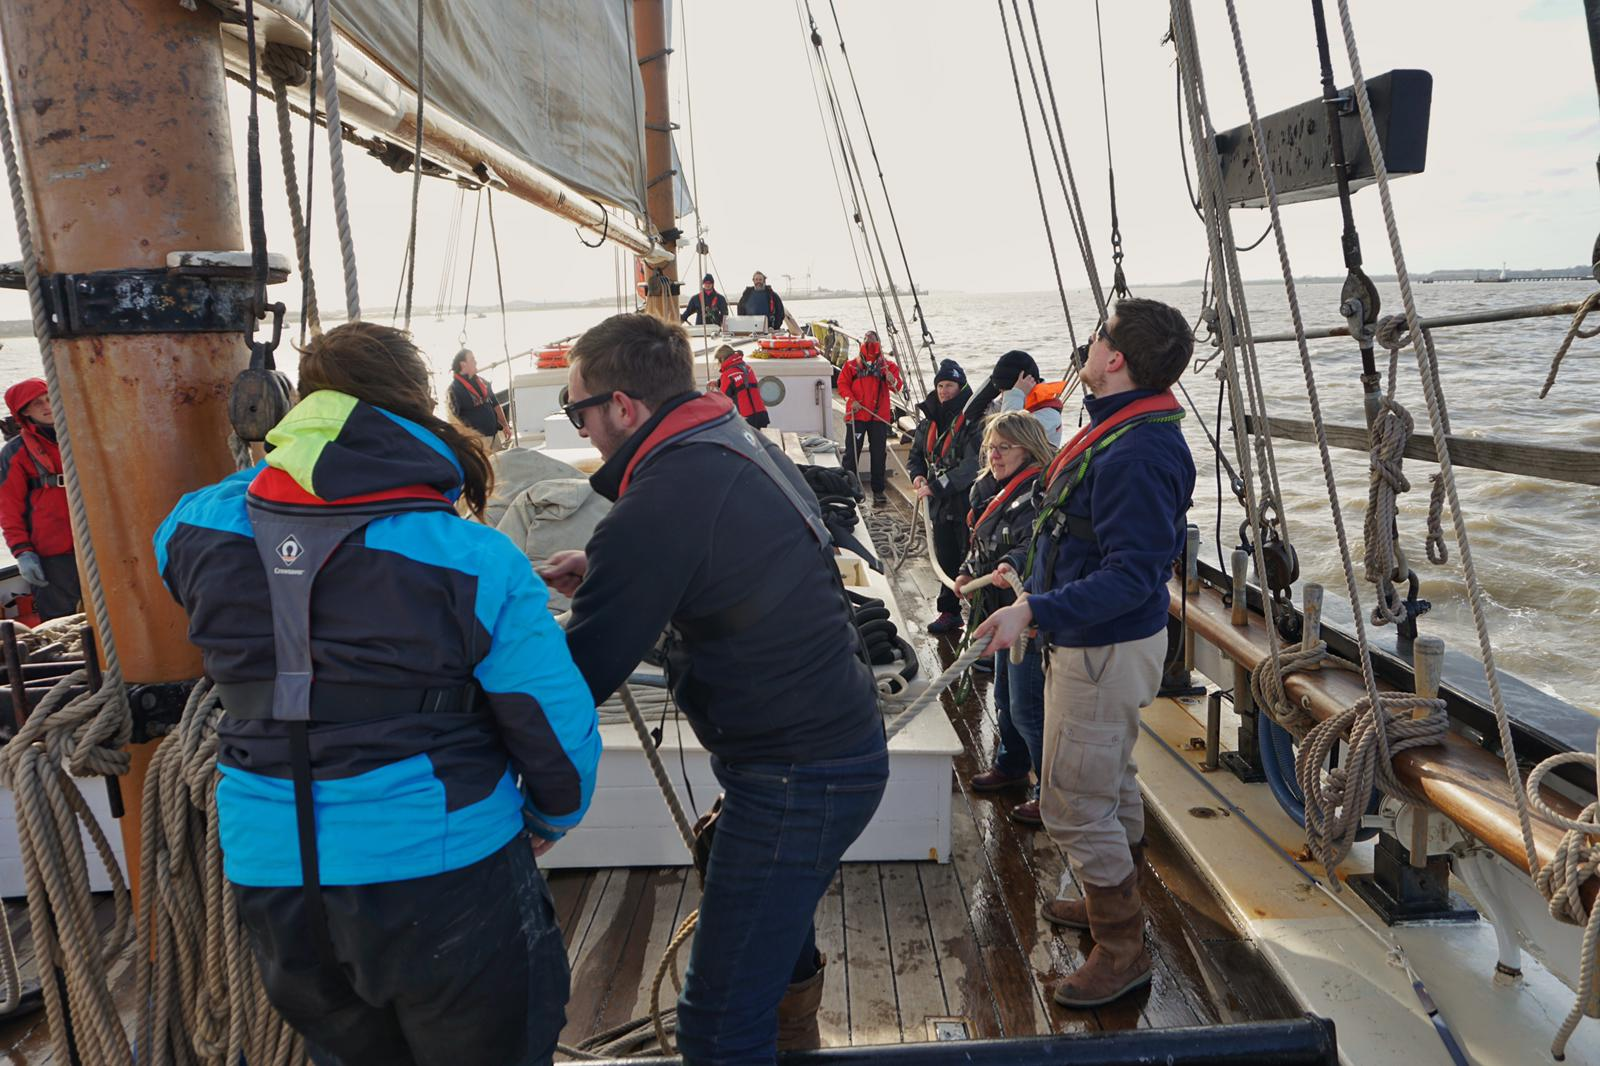 Team hauling sails